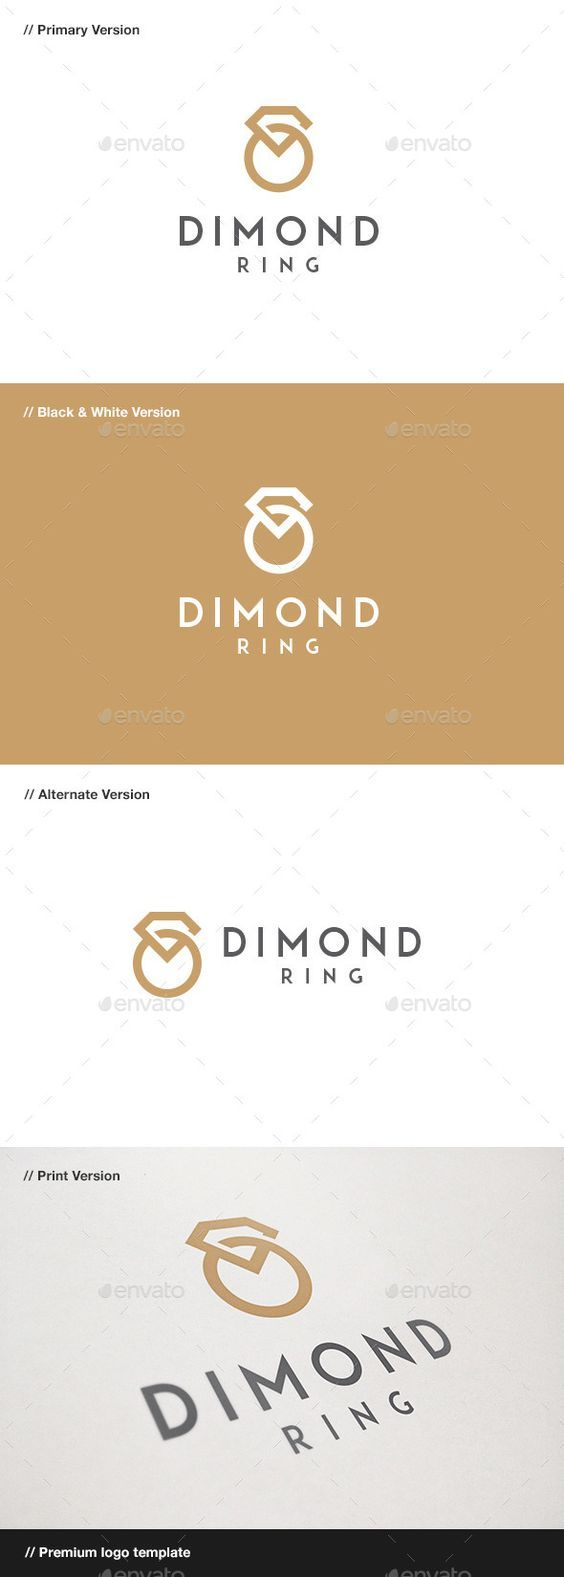 scalable logo diamond design file il business klgs listing jewelry psd